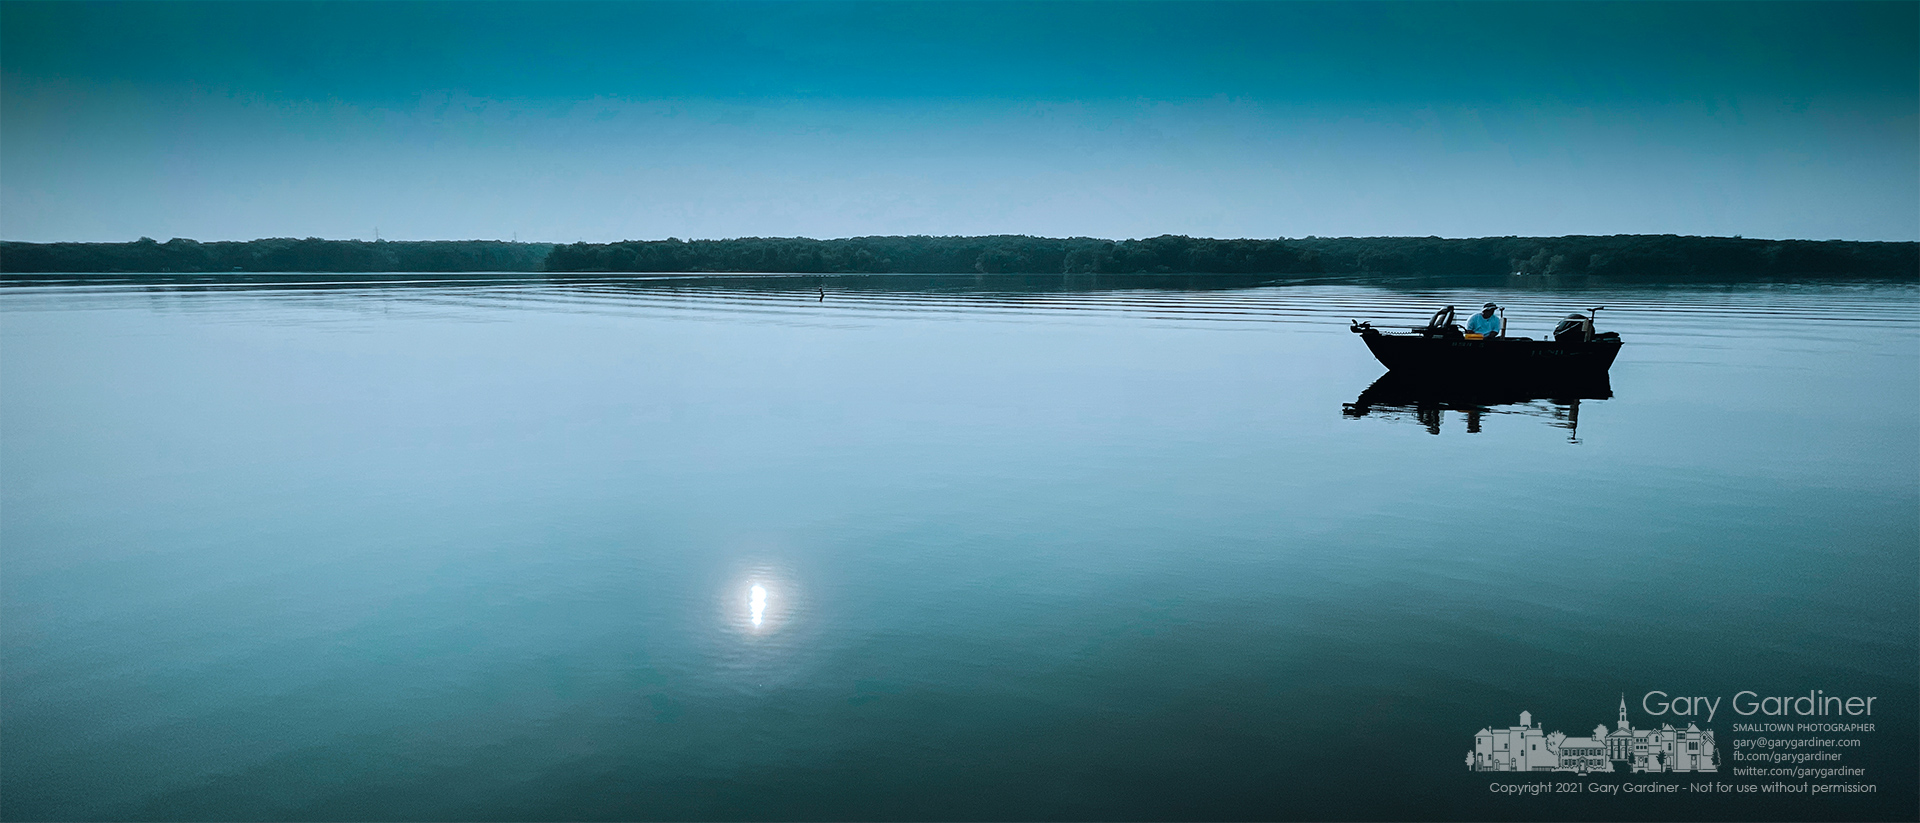 A fisherman sits idle on the Hoover Reservoir, its still waters disturbed only by his return to the docks after an early morning fishing. My Final Photo for July 28, 2021.